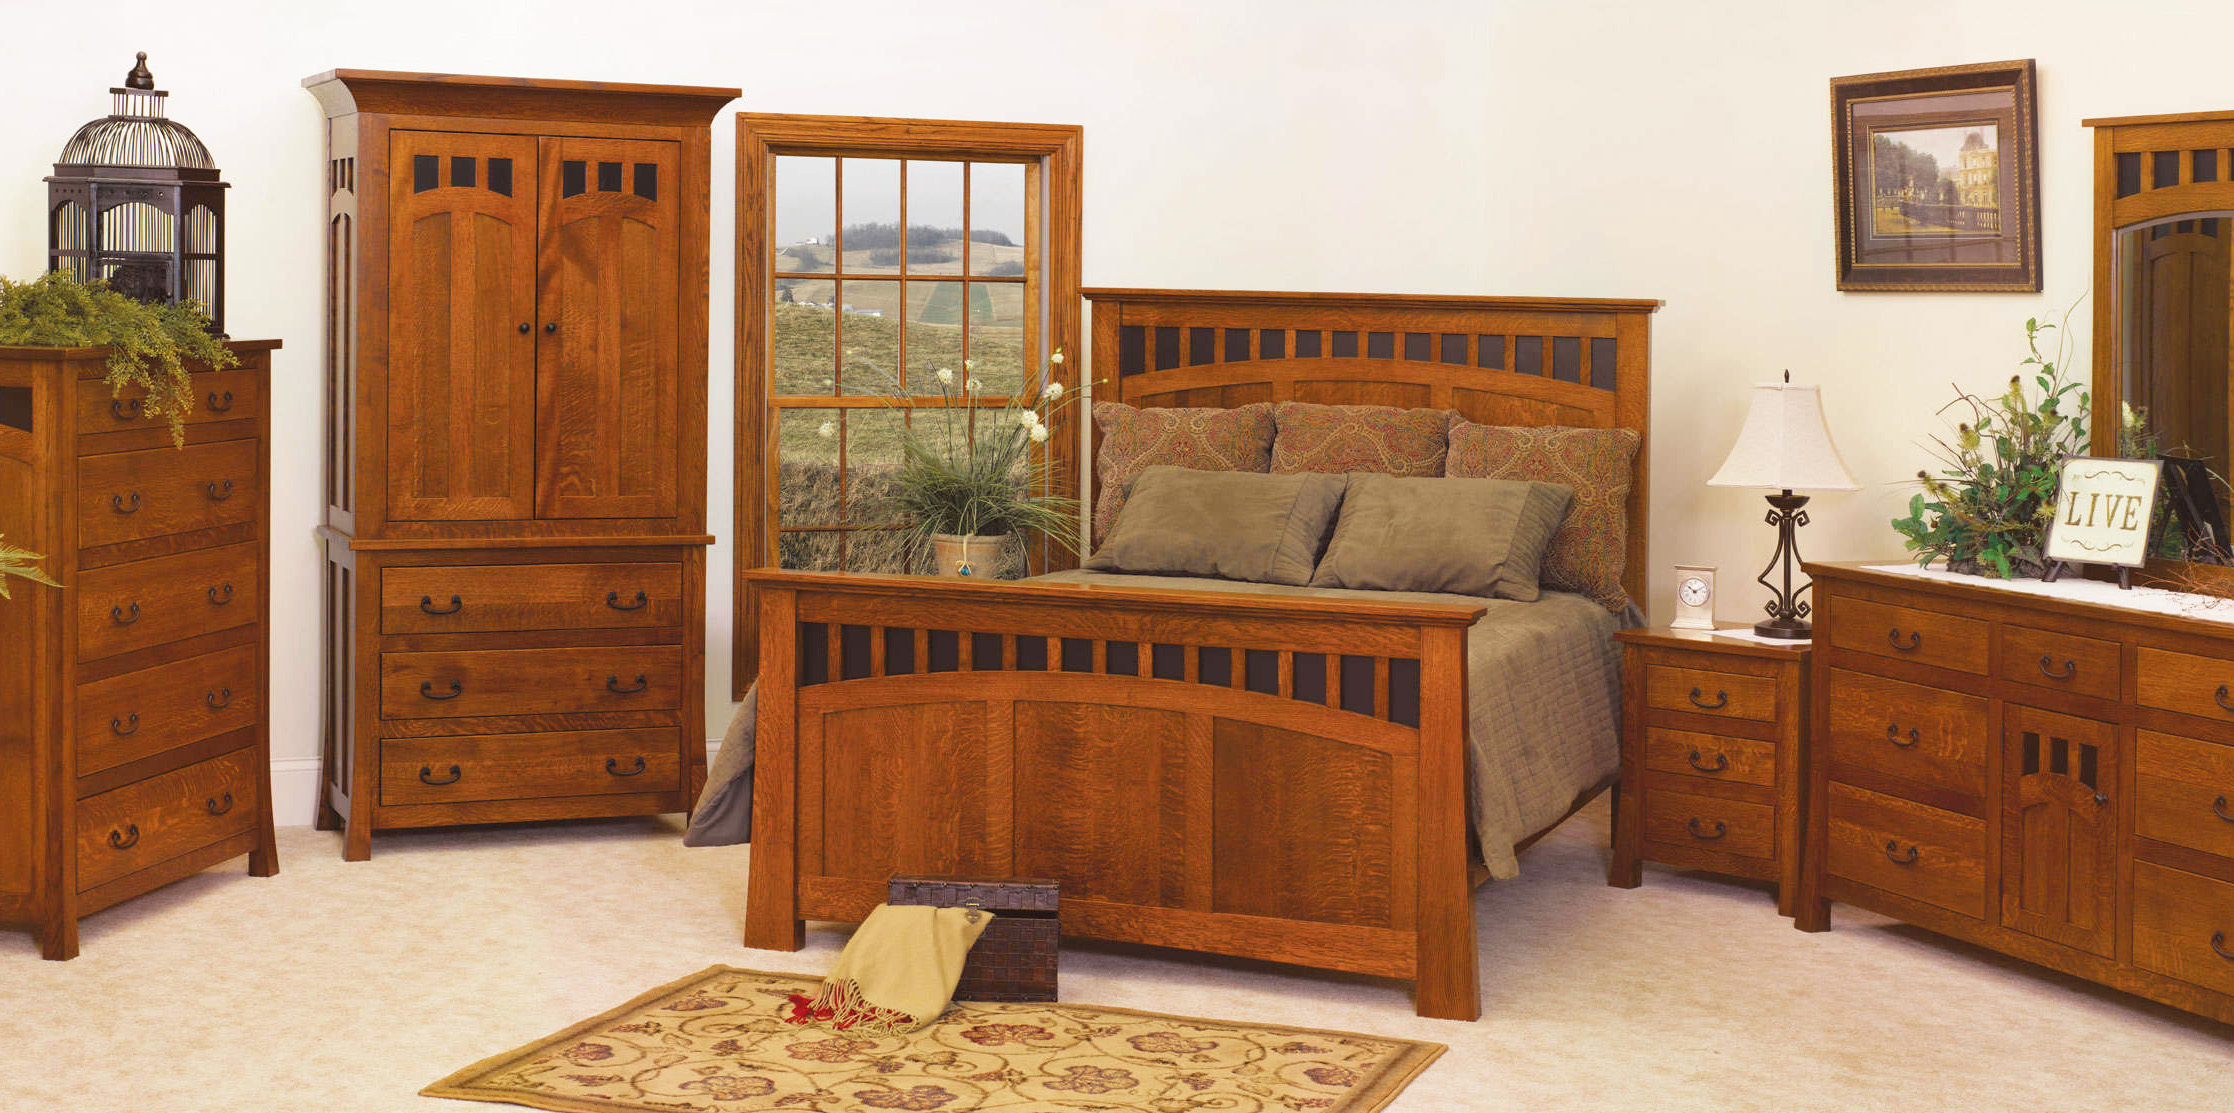 the-best-wooden-furniture-material-for-modern-bedroom-furniture-in-rustic-bedroom-furniture